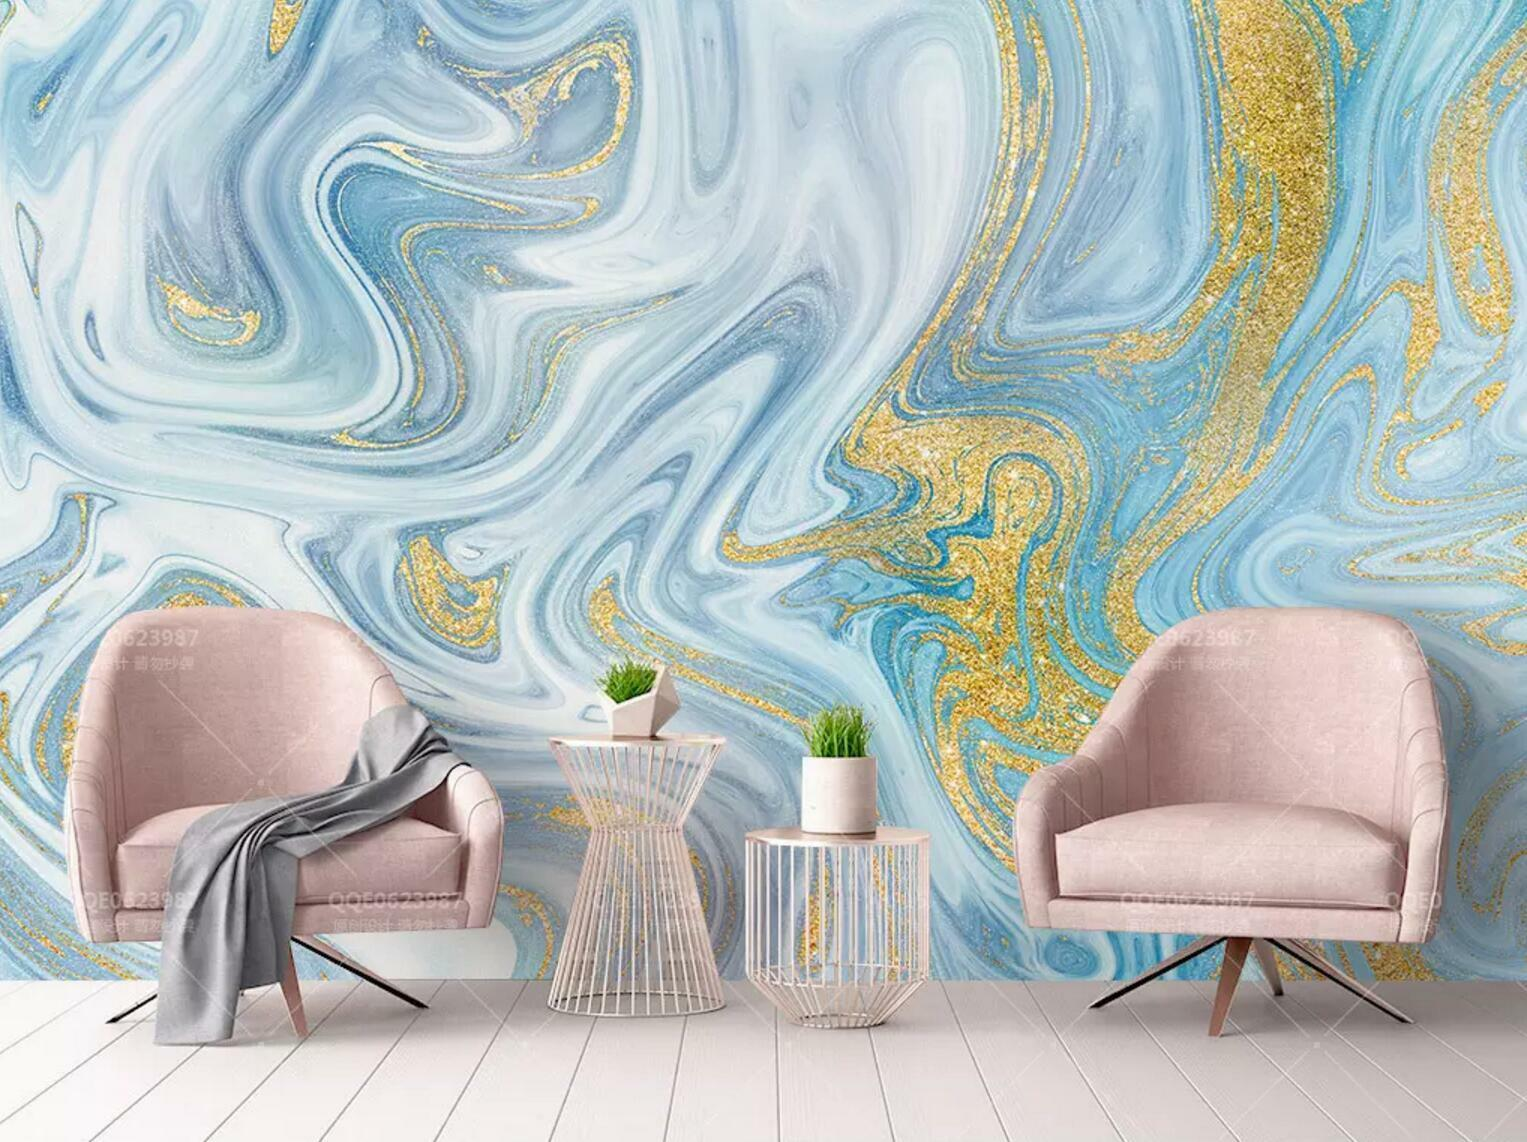 3D bluee gold Texture 45 Wall Paper Exclusive MXY Wallpaper Mural Decal Indoor AJ